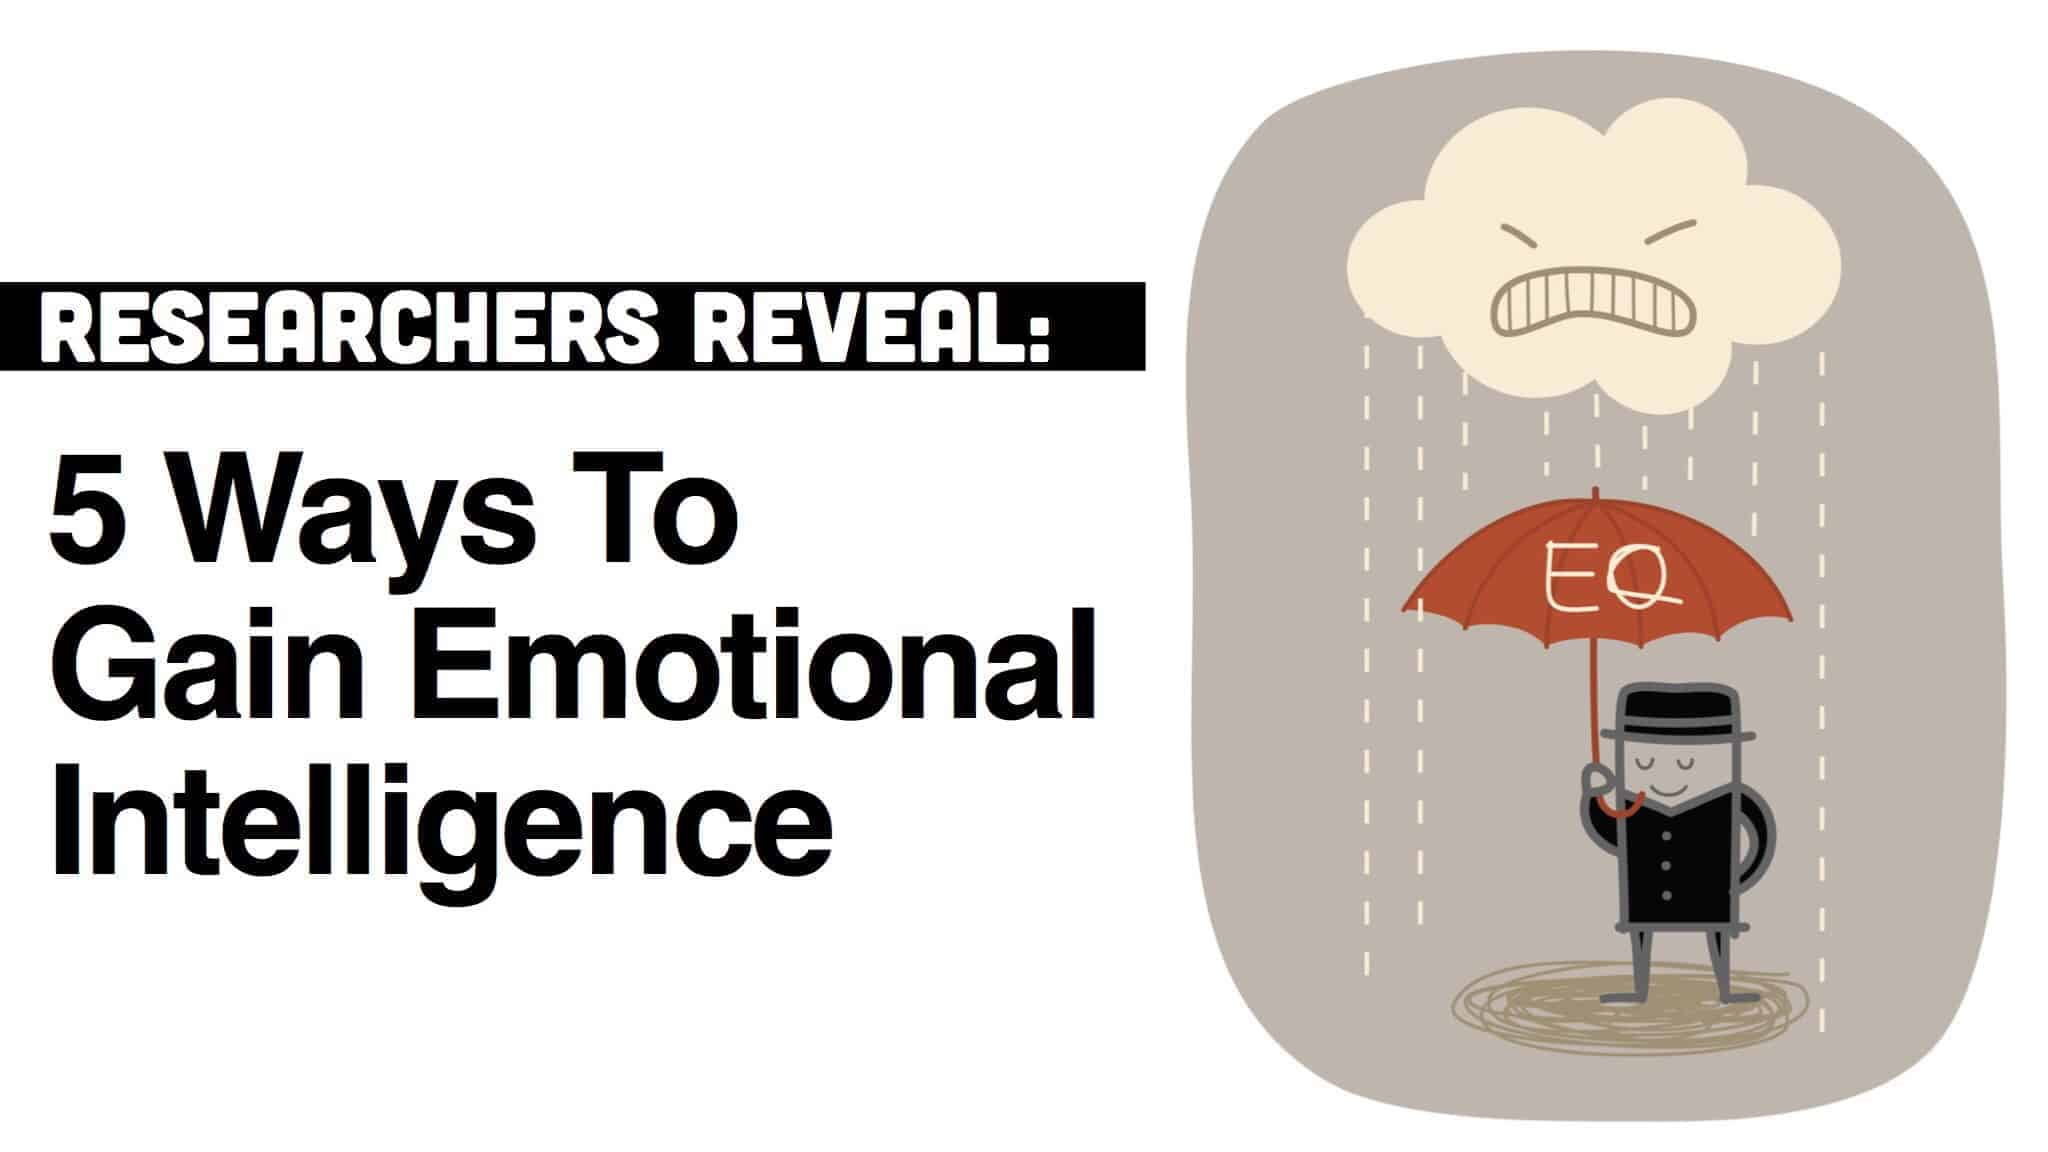 Researchers Reveal 5 Ways To Gain Emotional Intelligence